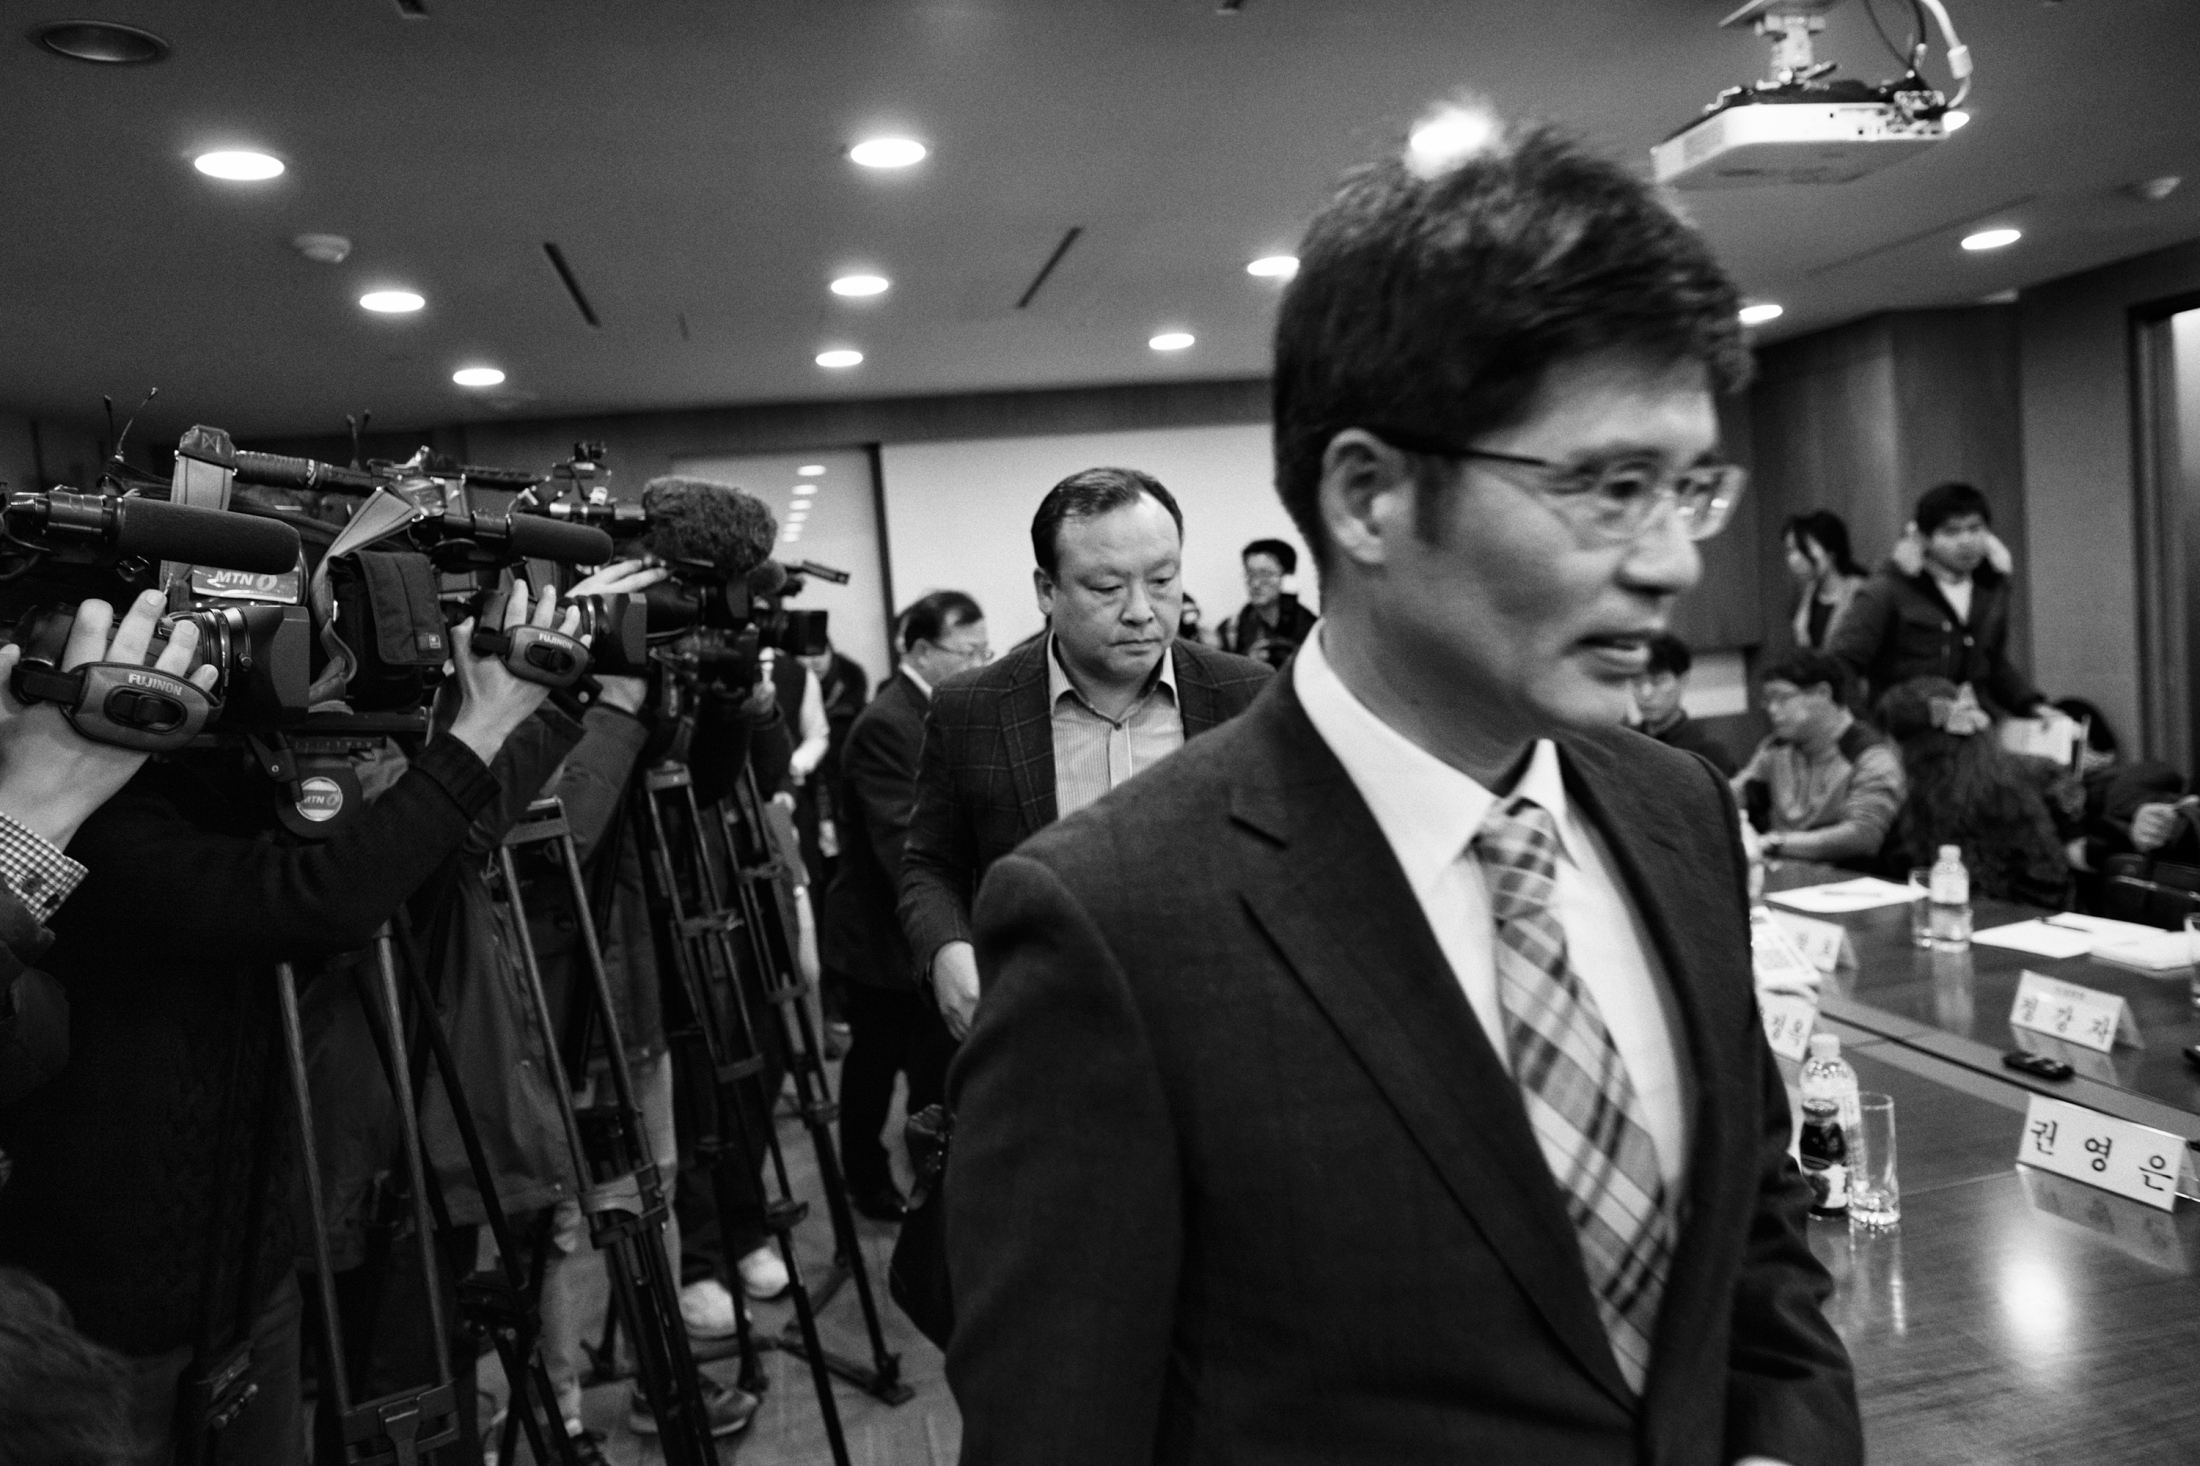 "Baek Su-hyun and Choi Wan-woo, members of Samsung Electronics enter the conference room at the office of a law firm ""Jipyong"" to join the compensation council meeting for victims of Samsung Electronics semiconductor chips and display factories on Jan. 16, 2015 in Seoul, South Korea. The victims, Banolim and Samsung Electronics started negotiation for settlement since 2013. After months of tedious meetings and arguments, they agreed to organize the coordination committee from the third party and authorize the committee to proceed the negotiation in October 2014. The committee suggested the first draft of the compensation plan at the meeting, but none of the parties accepted the offer. After the meeting, on September 2015 Samsung Electronics announced to launch their compensation package for the victims independently in disregard of the year-long meeting with the coordination committee and victims' family members."